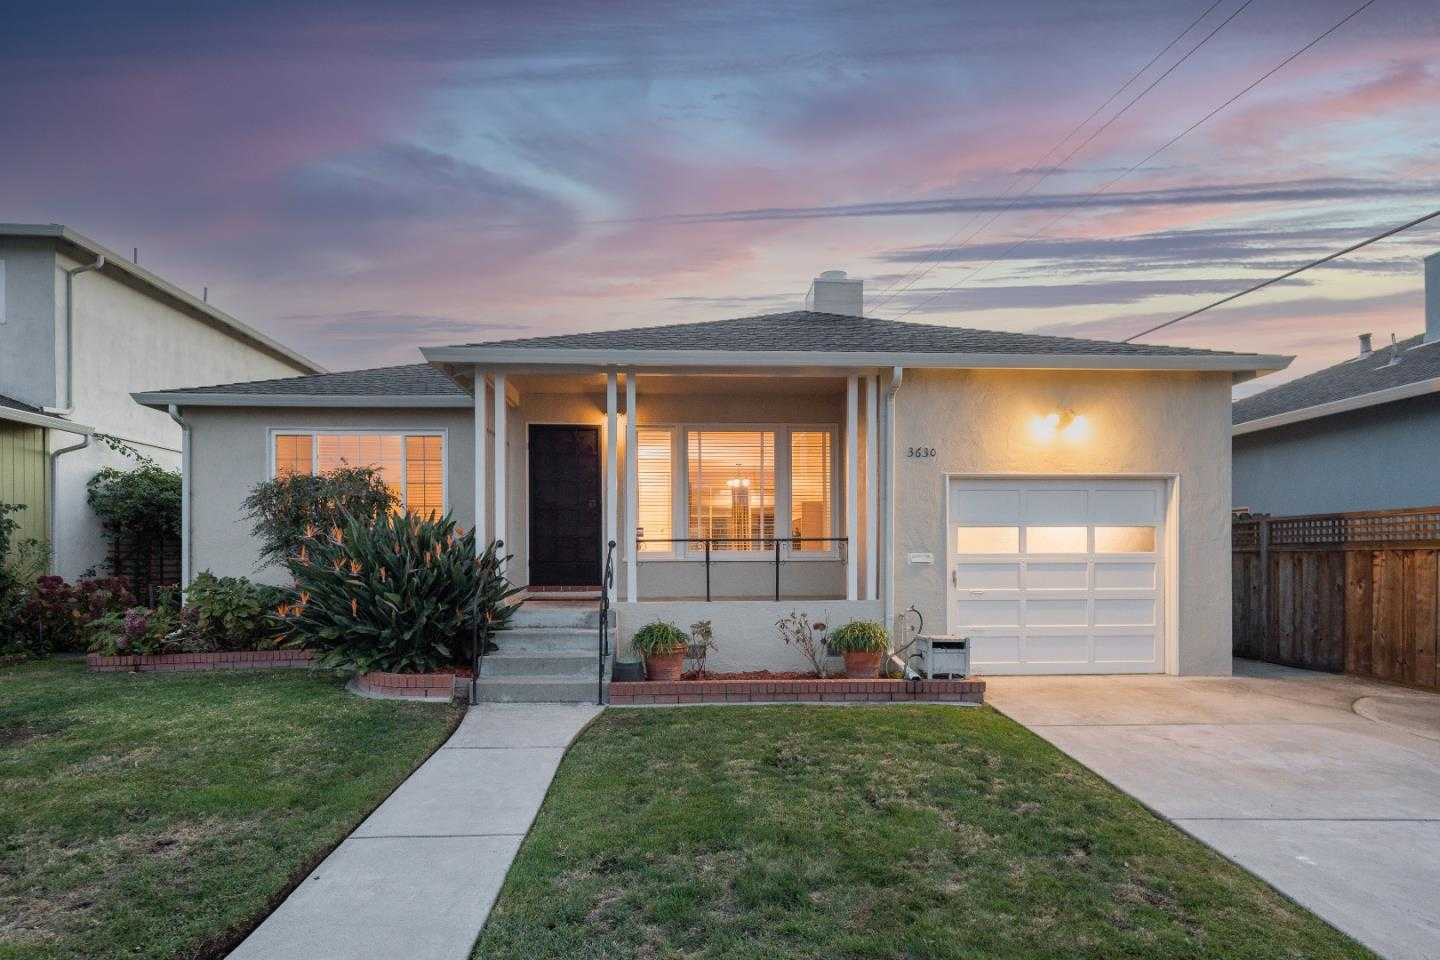 $1,298,000 - 2Br/1Ba -  for Sale in San Mateo